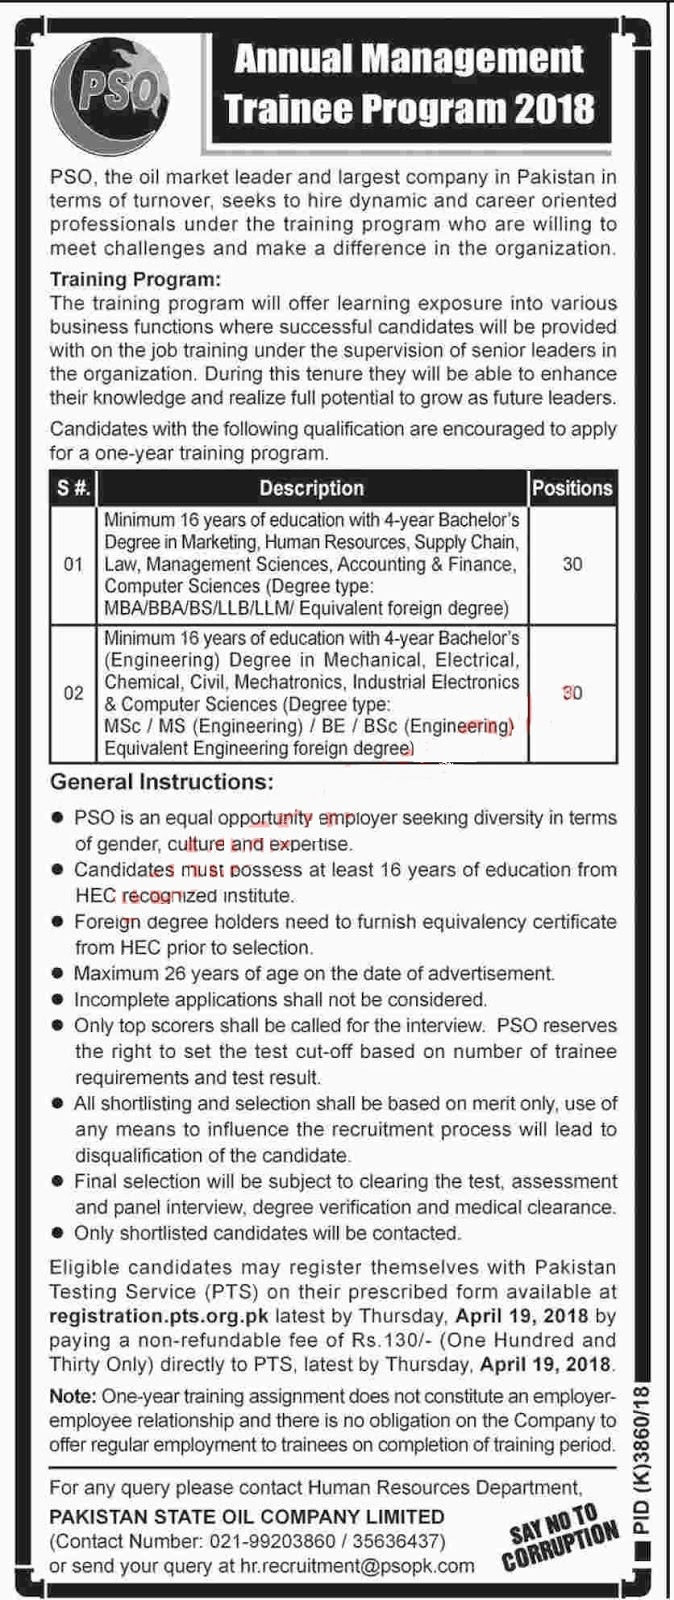 PSO Management Trainee Program 2018, PSO MTO Program 2018, Oil and Gas Jobs for Engineers, Oil and Gas Jobs in Pakistan